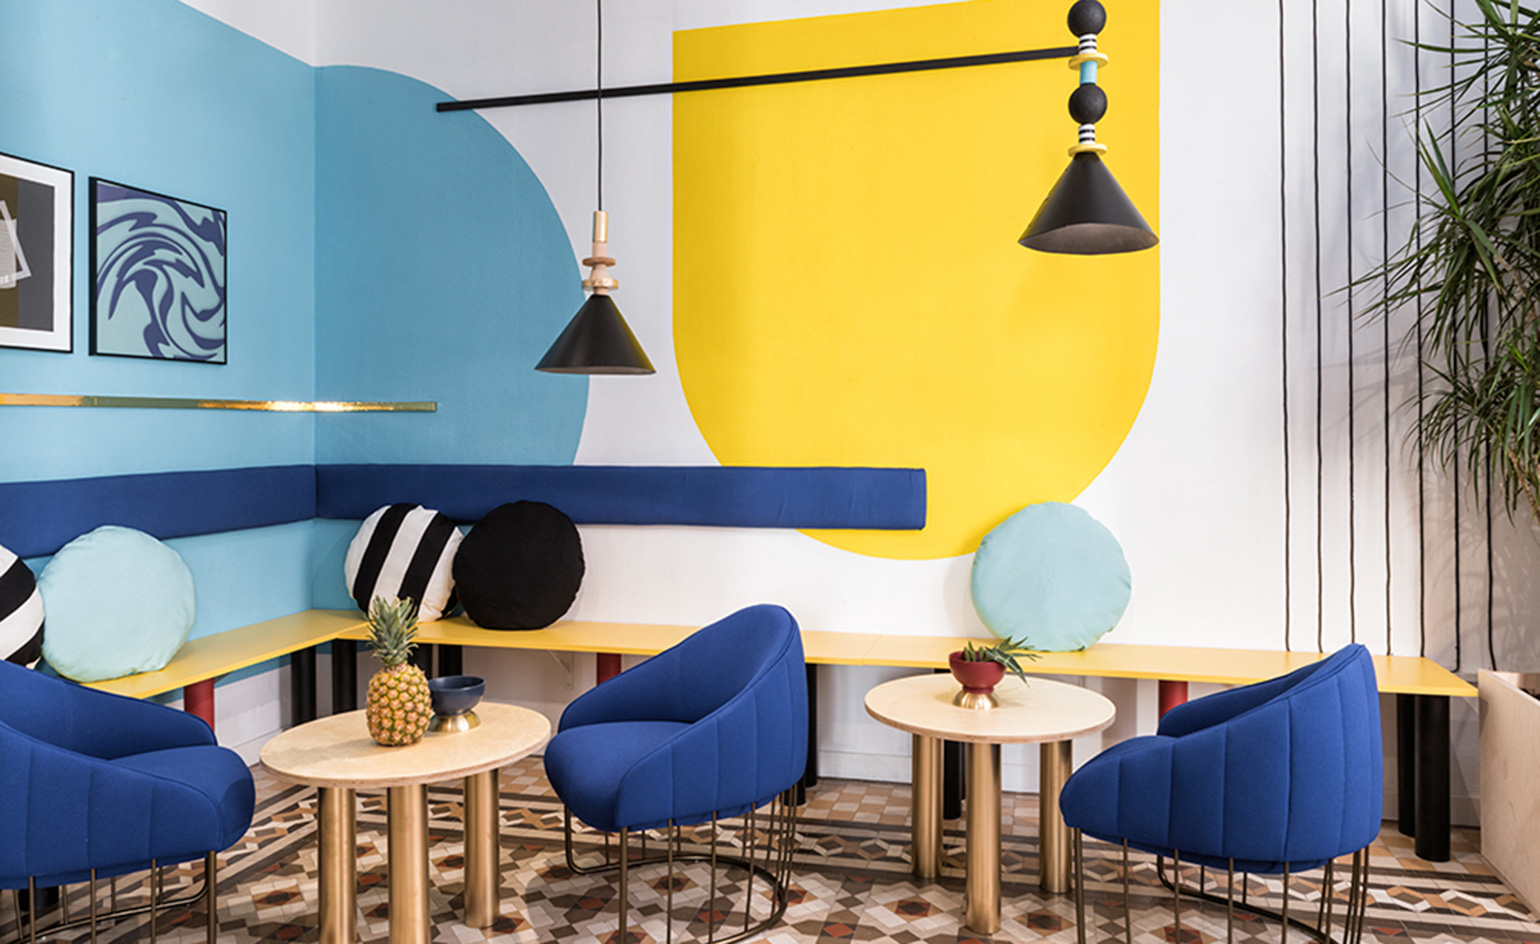 A Lounge Hostel in Spain that Will Warm Your Heart this Winter lounge hostel A Lounge Hostel in Spain that Will Warm Your Heart this Winter A Lounge Hostel in Spain that Will Warm Your Heart this Winter 6